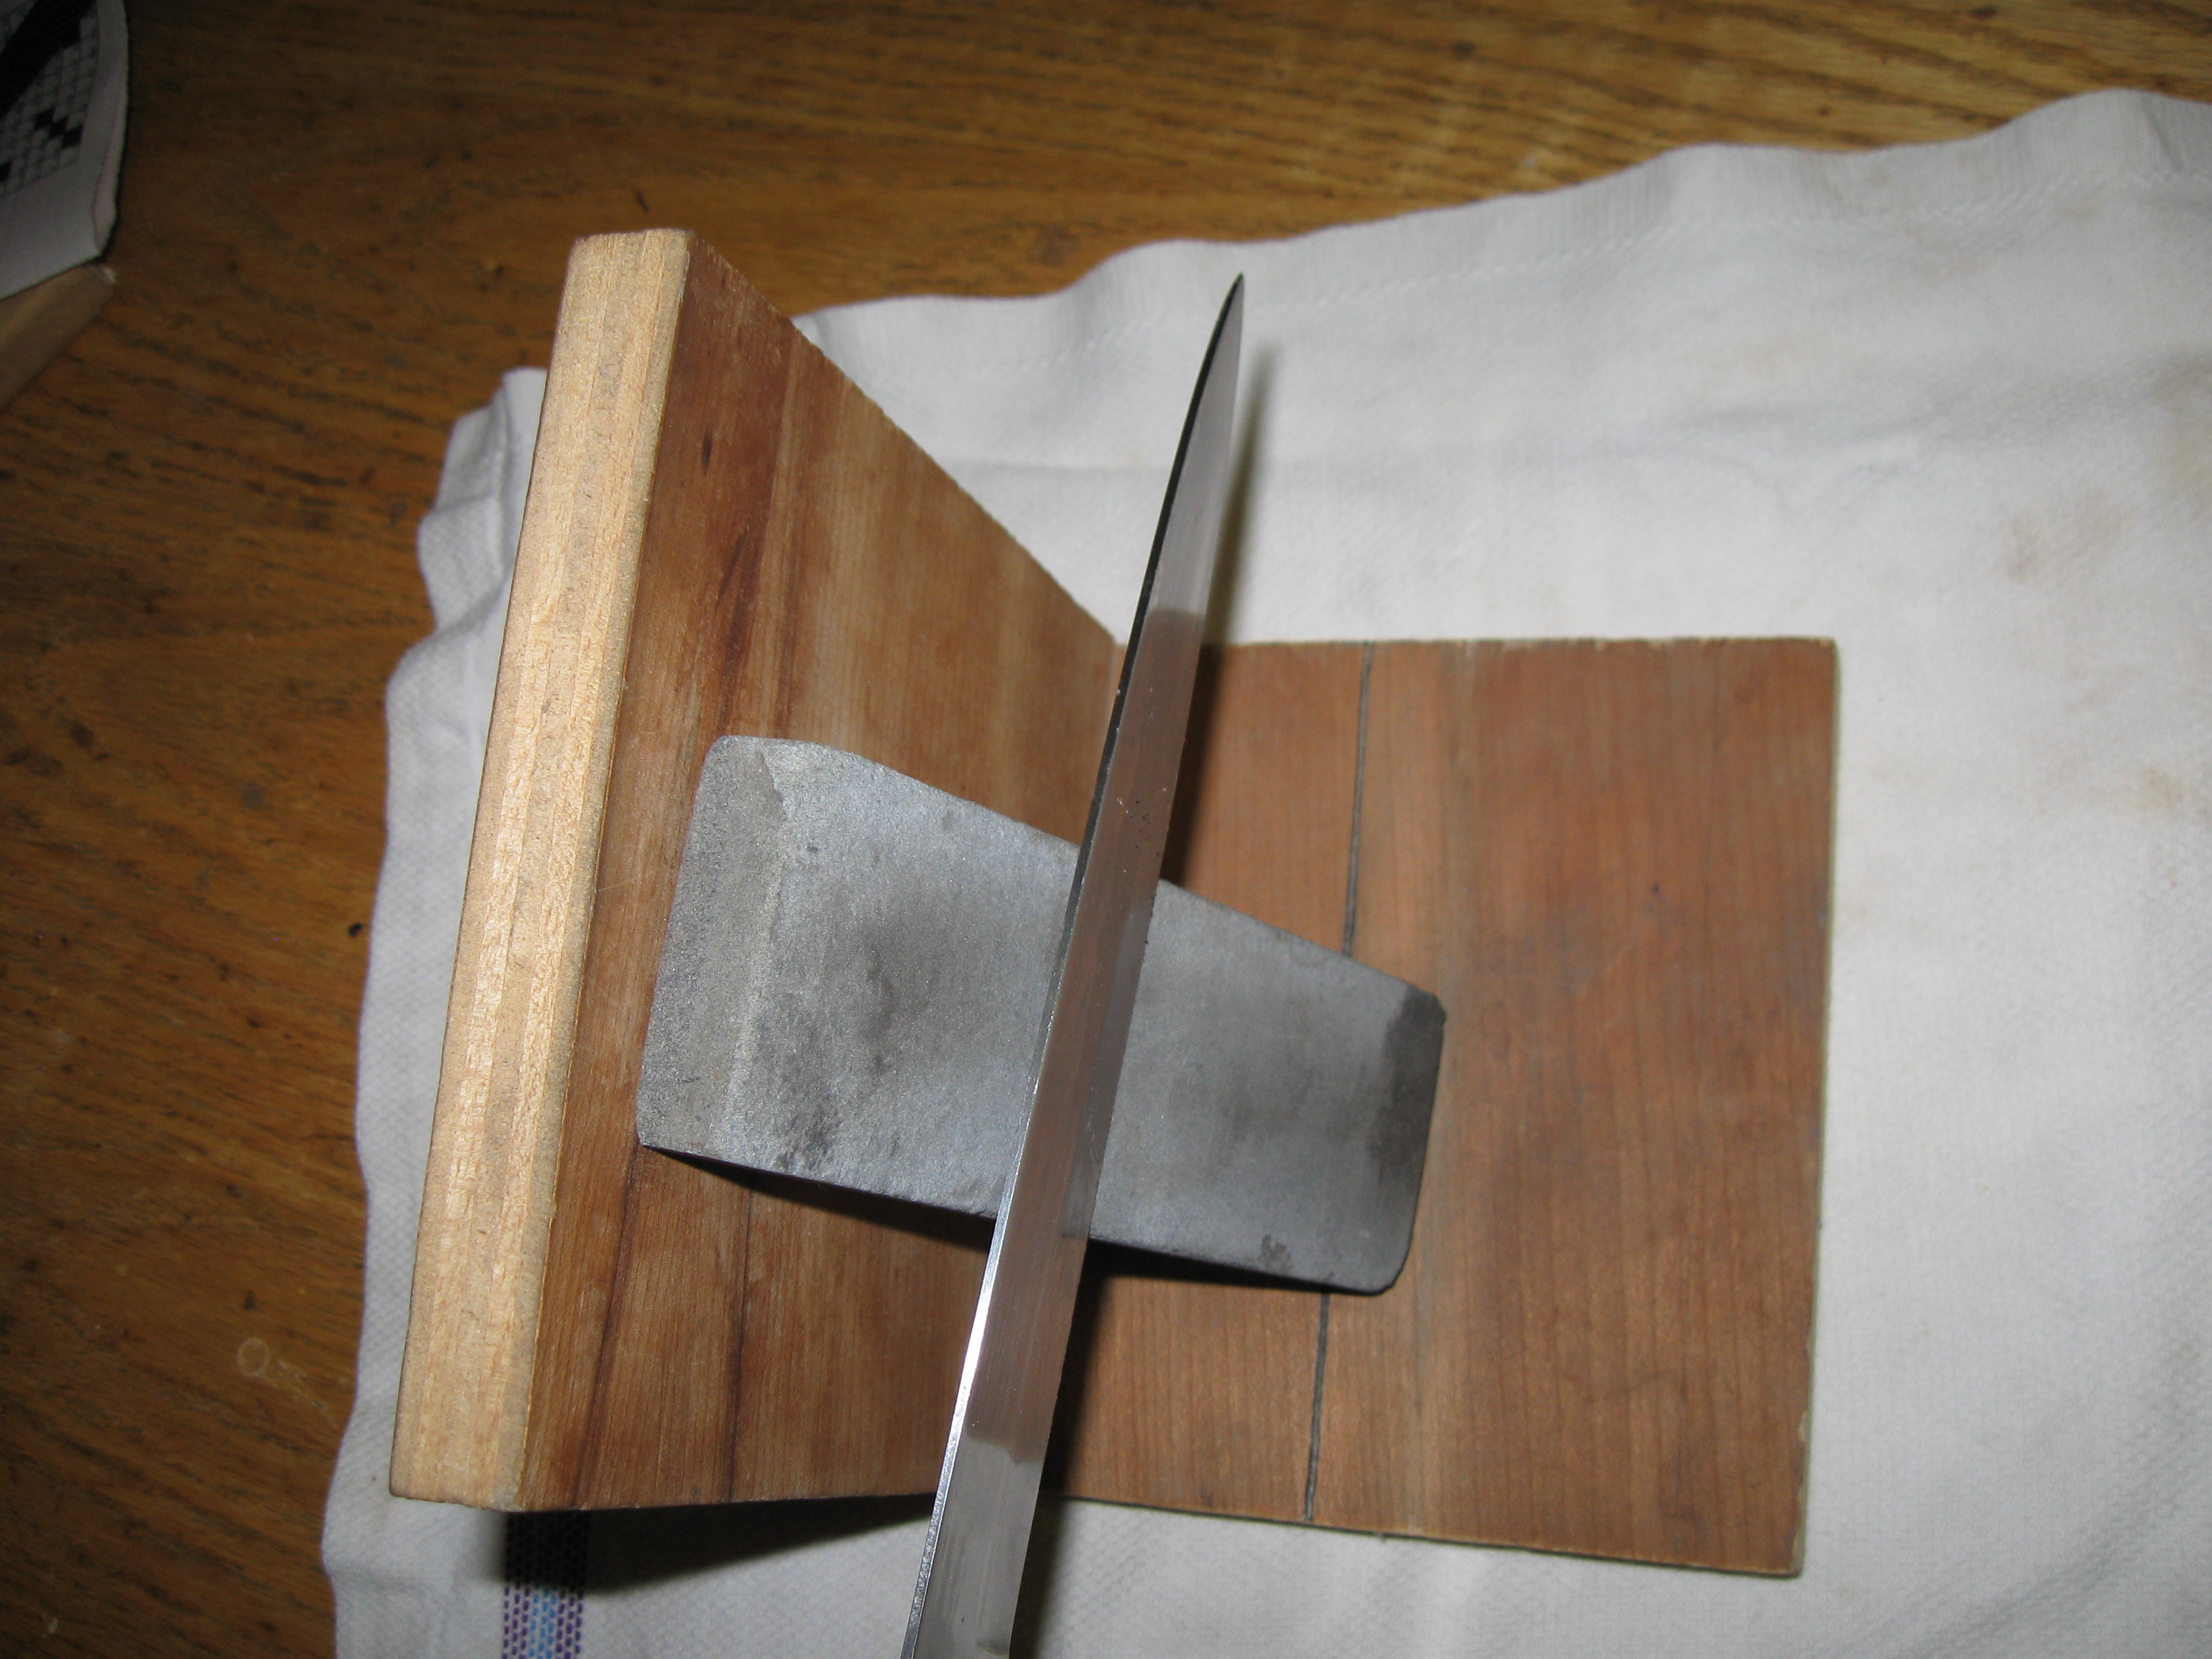 Picture of Make a Sharpening System With a Sharpening Stone and Sharpen Knives